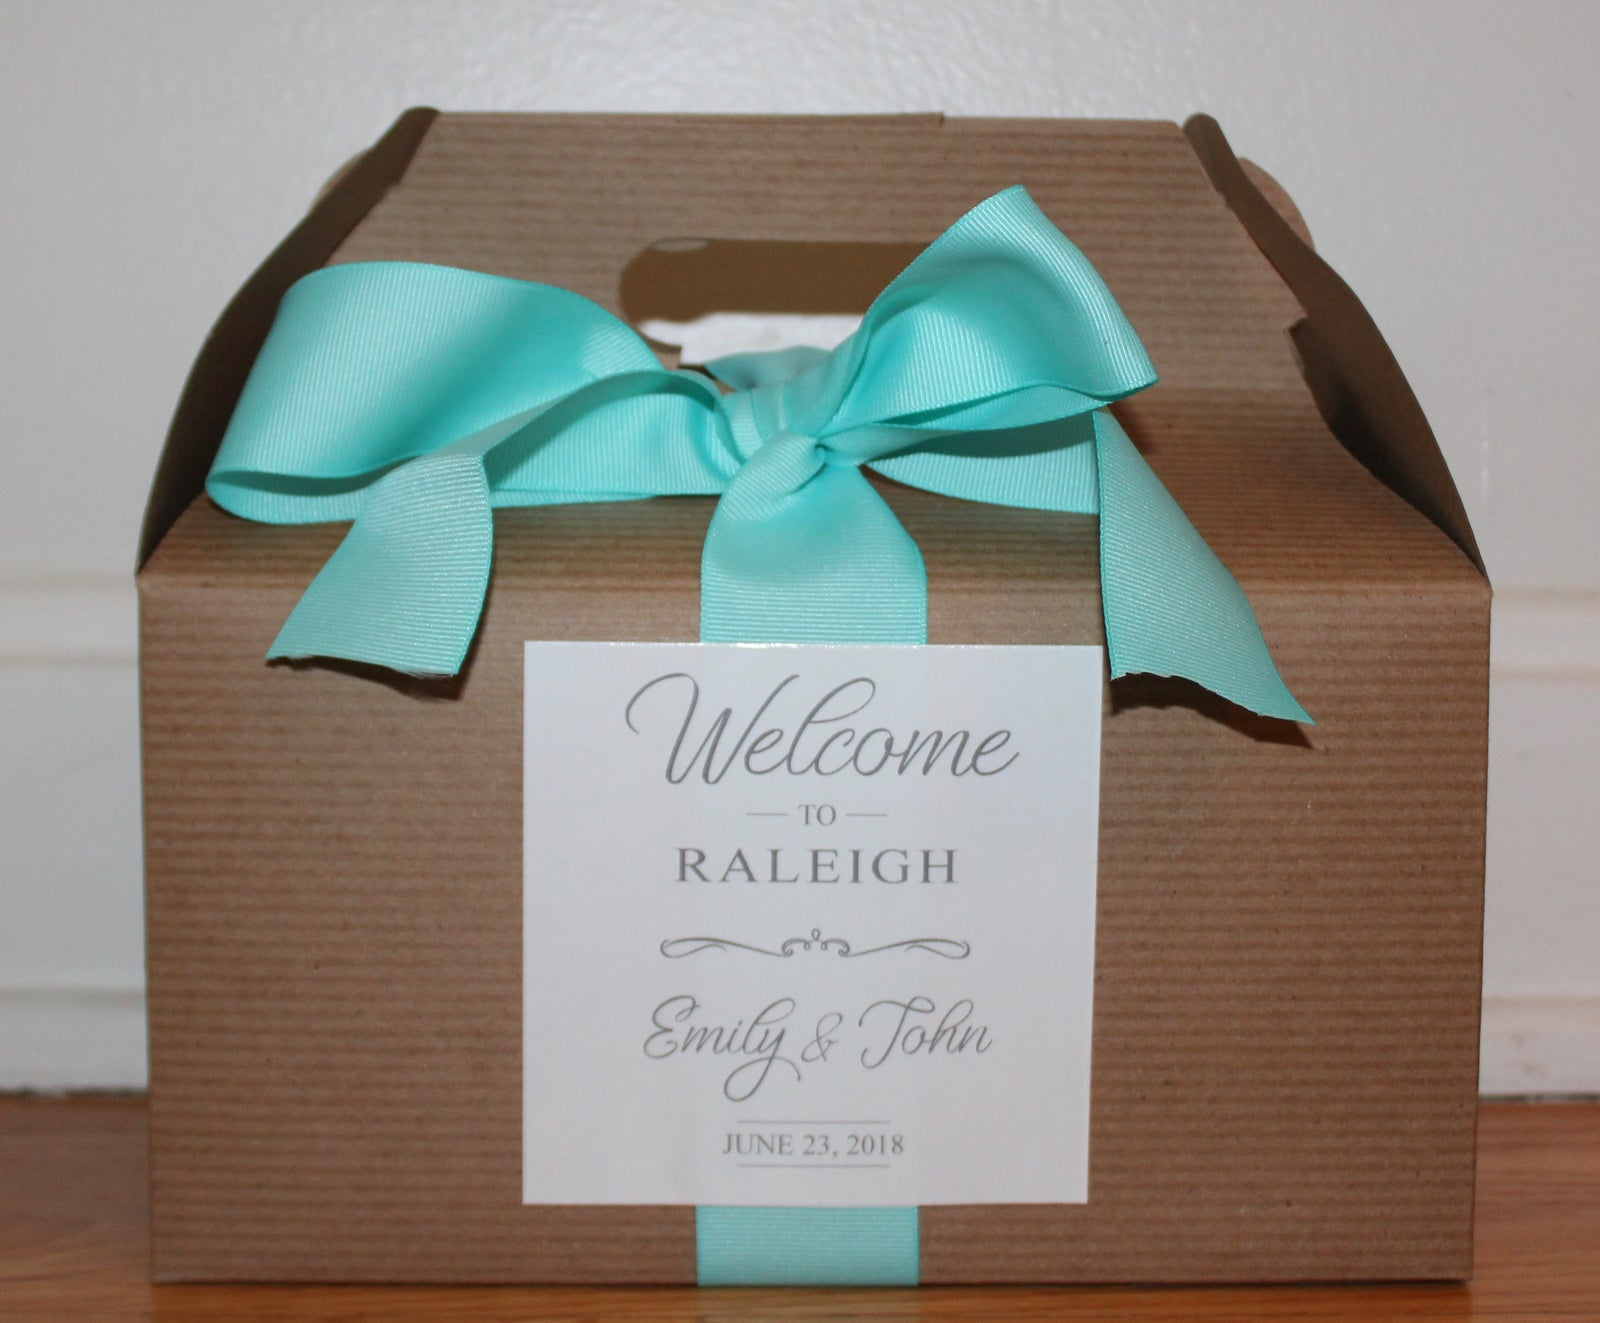 Welcome boxes for hotels for your guests